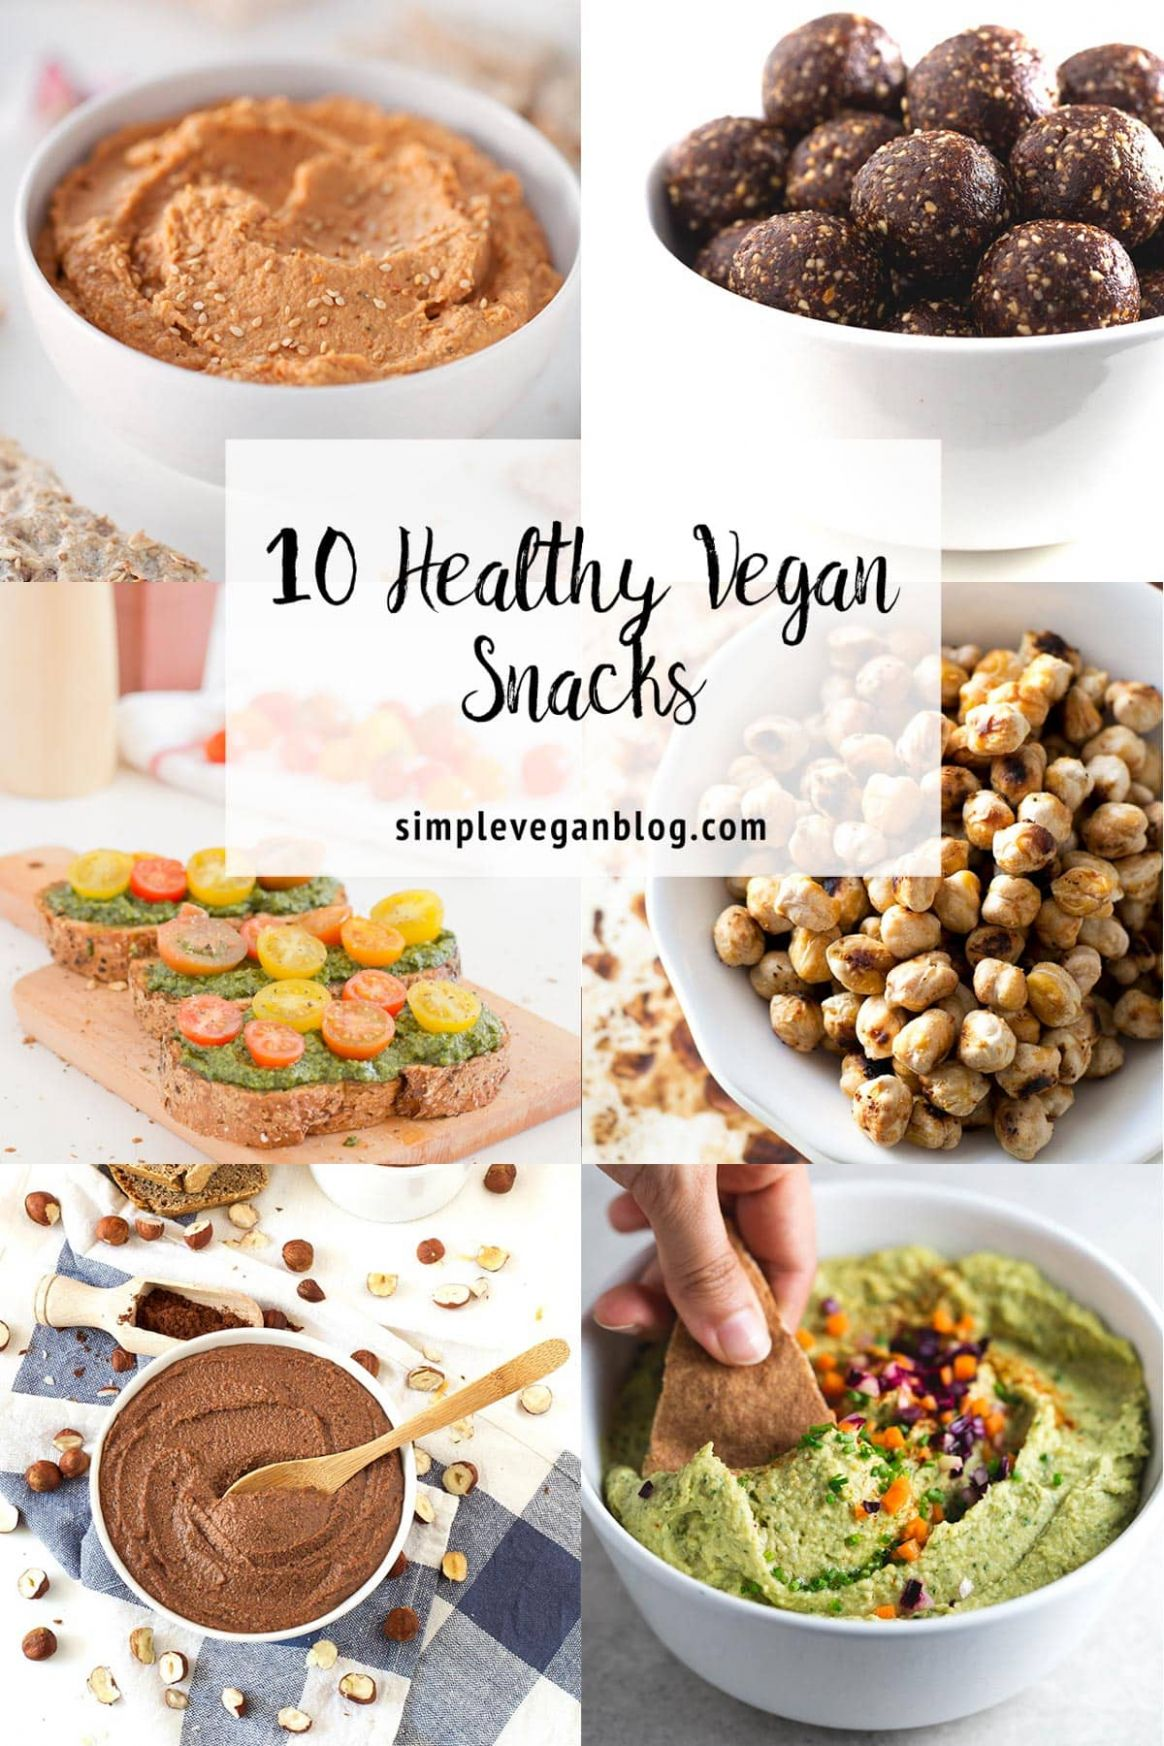 10 Healthy Vegan Snacks - Simple Vegan Blog